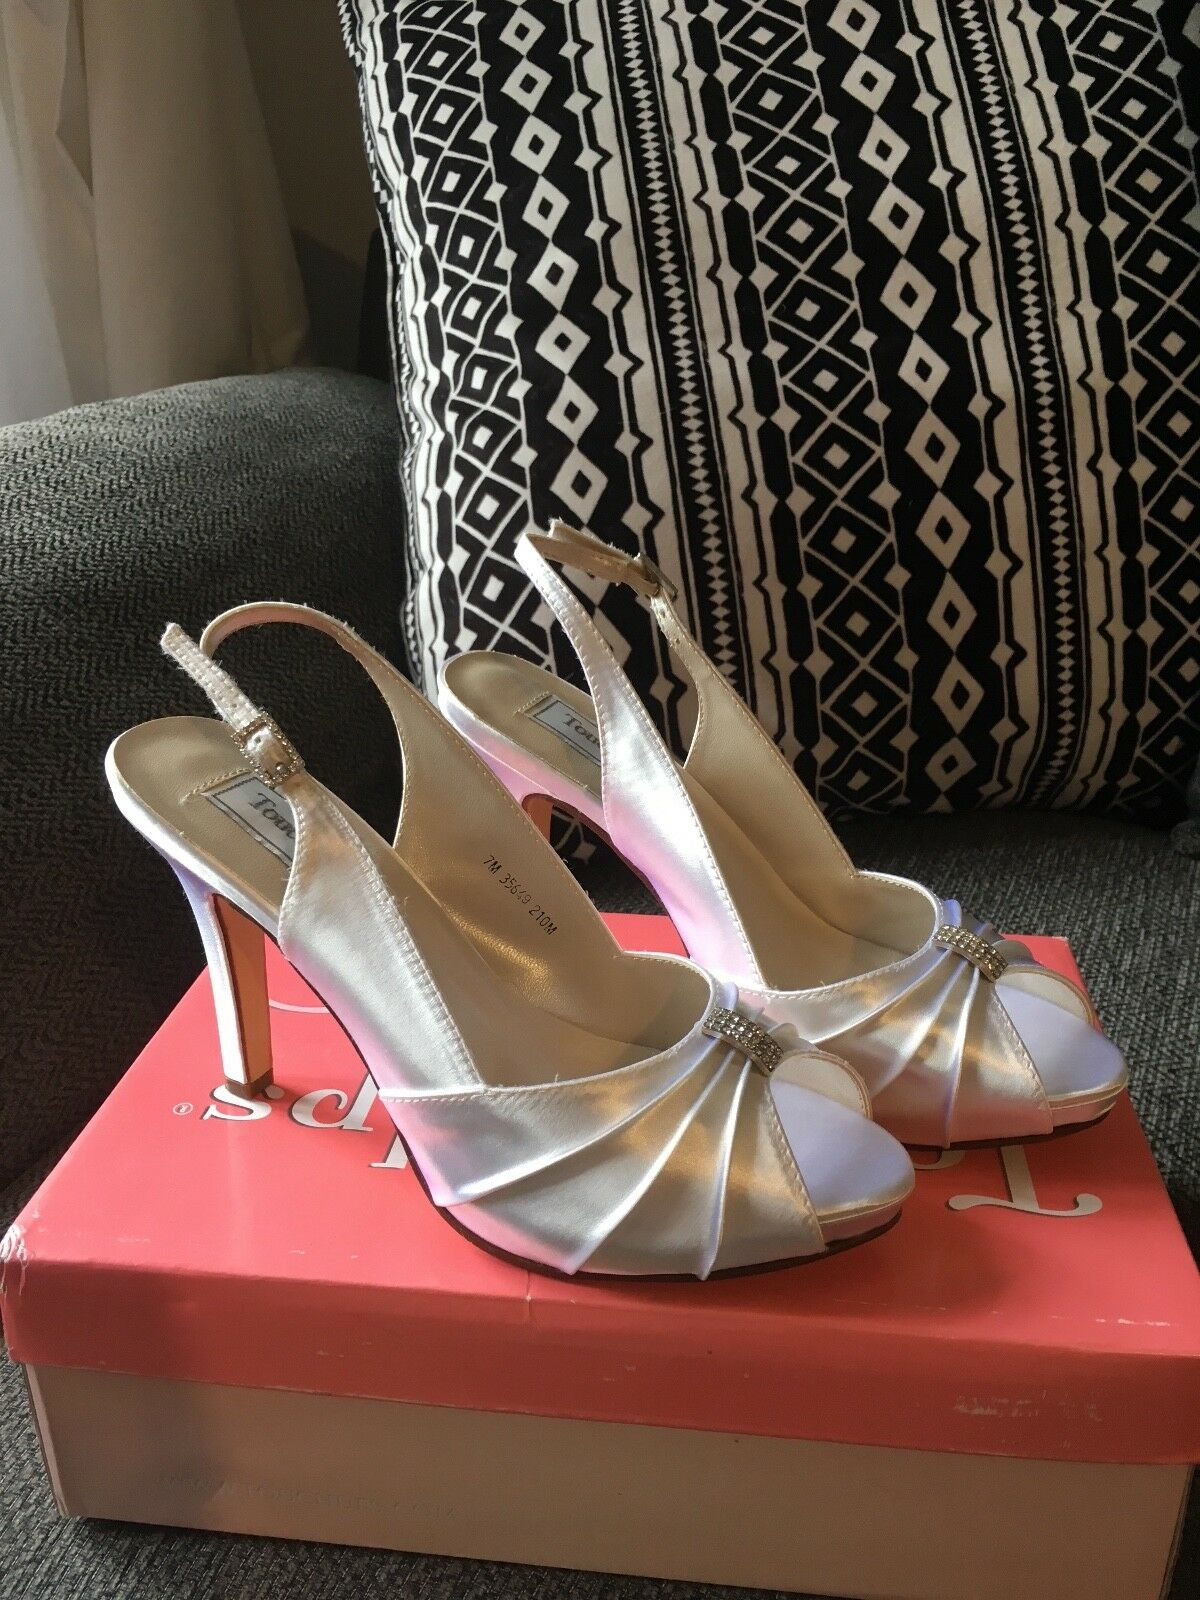 Touch Ups 'Iris' bridal shoes size 5. New.